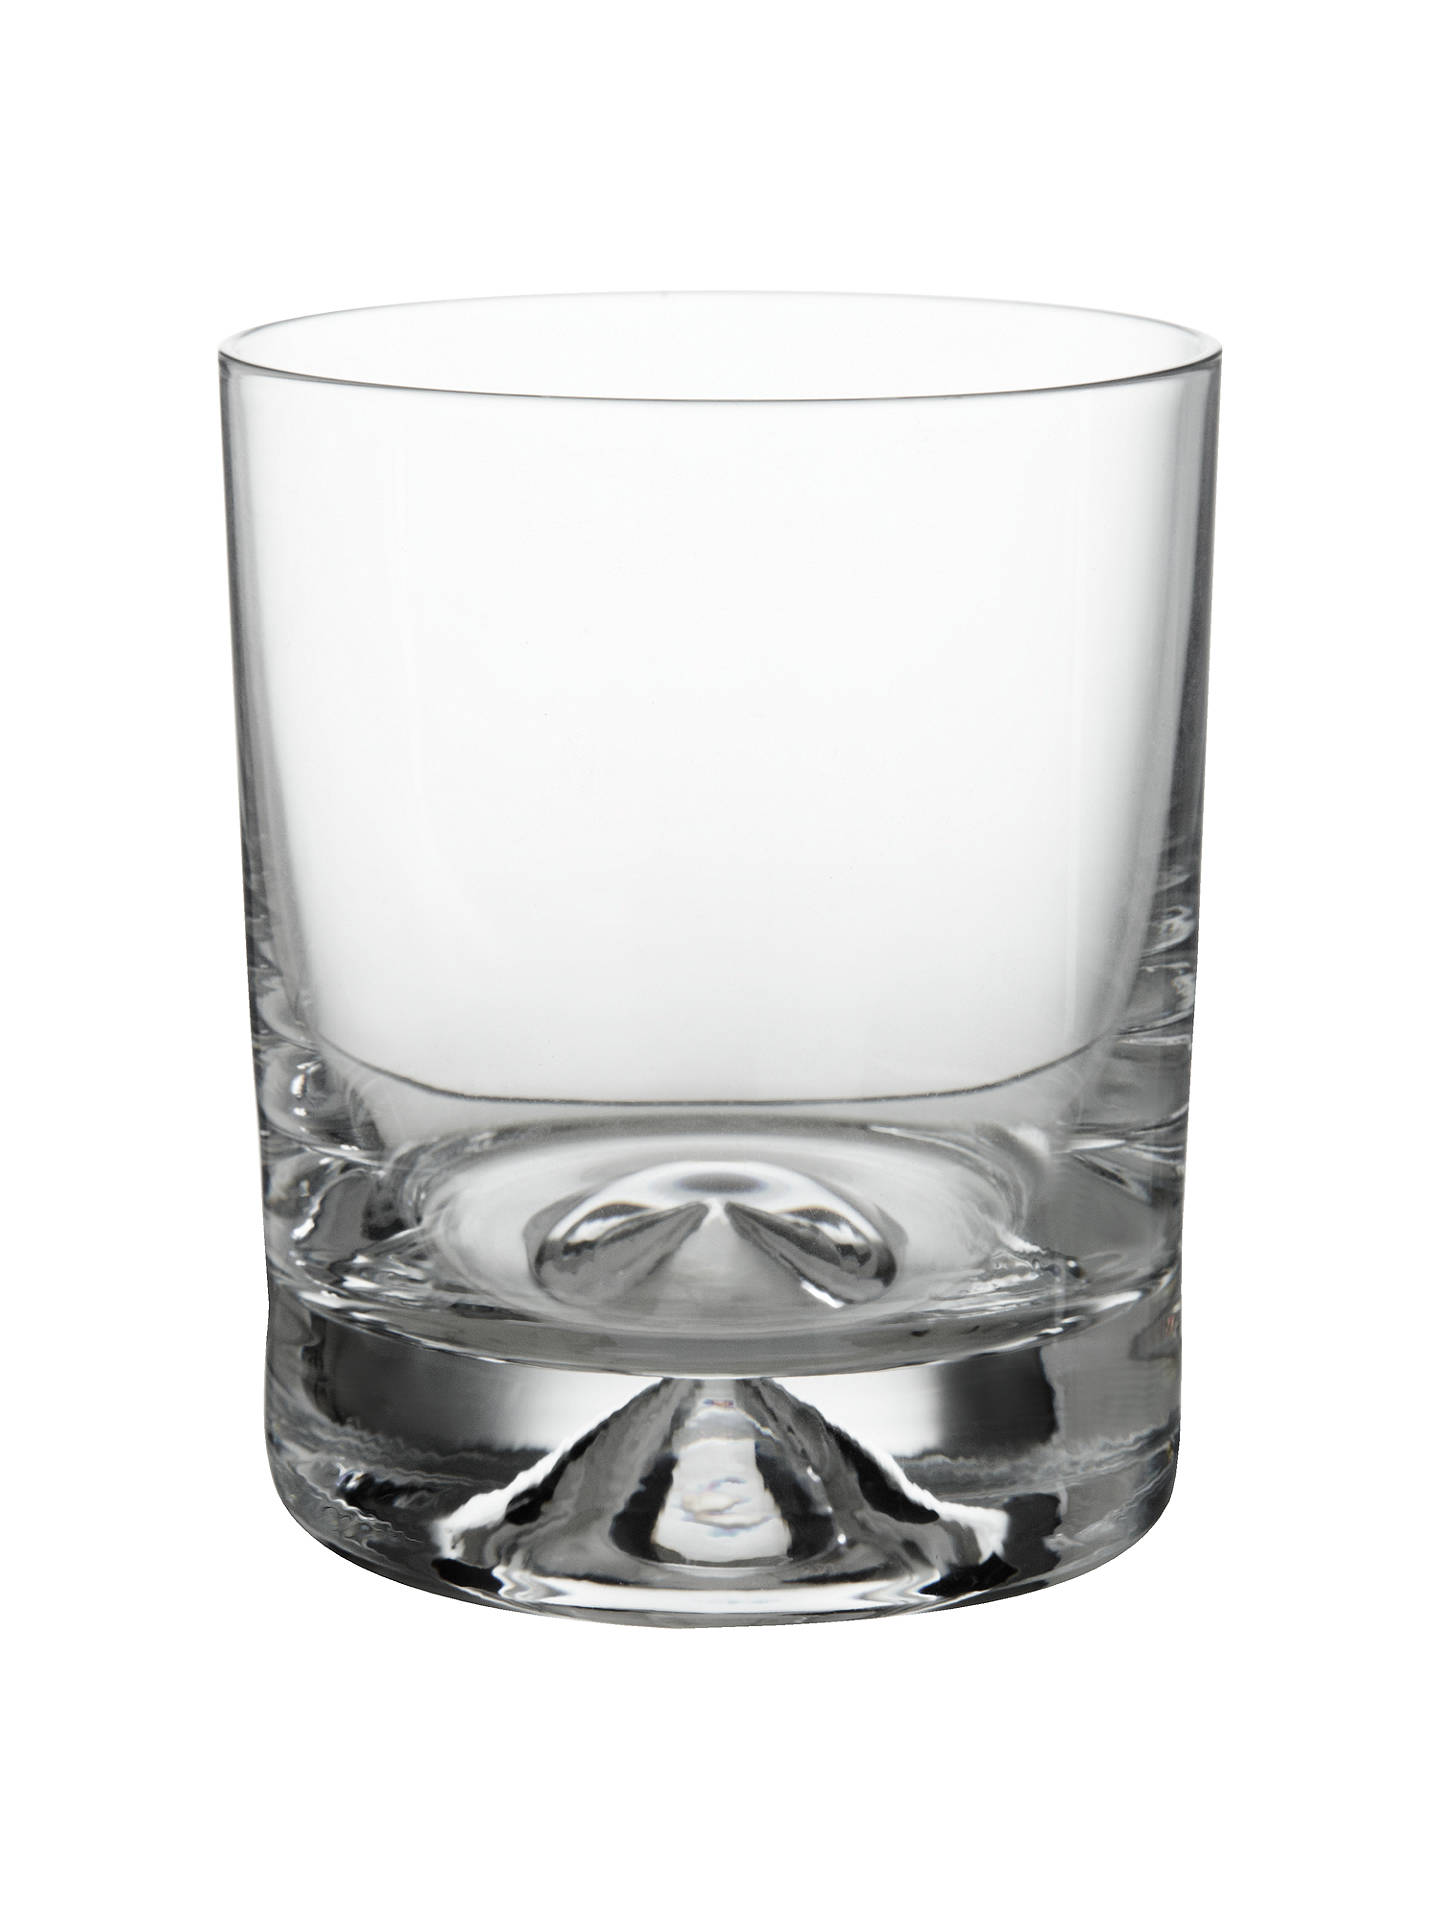 BuyJohn Lewis & Partners Cocktail Pyramid Short Glass, Set of 4 Online at johnlewis.com